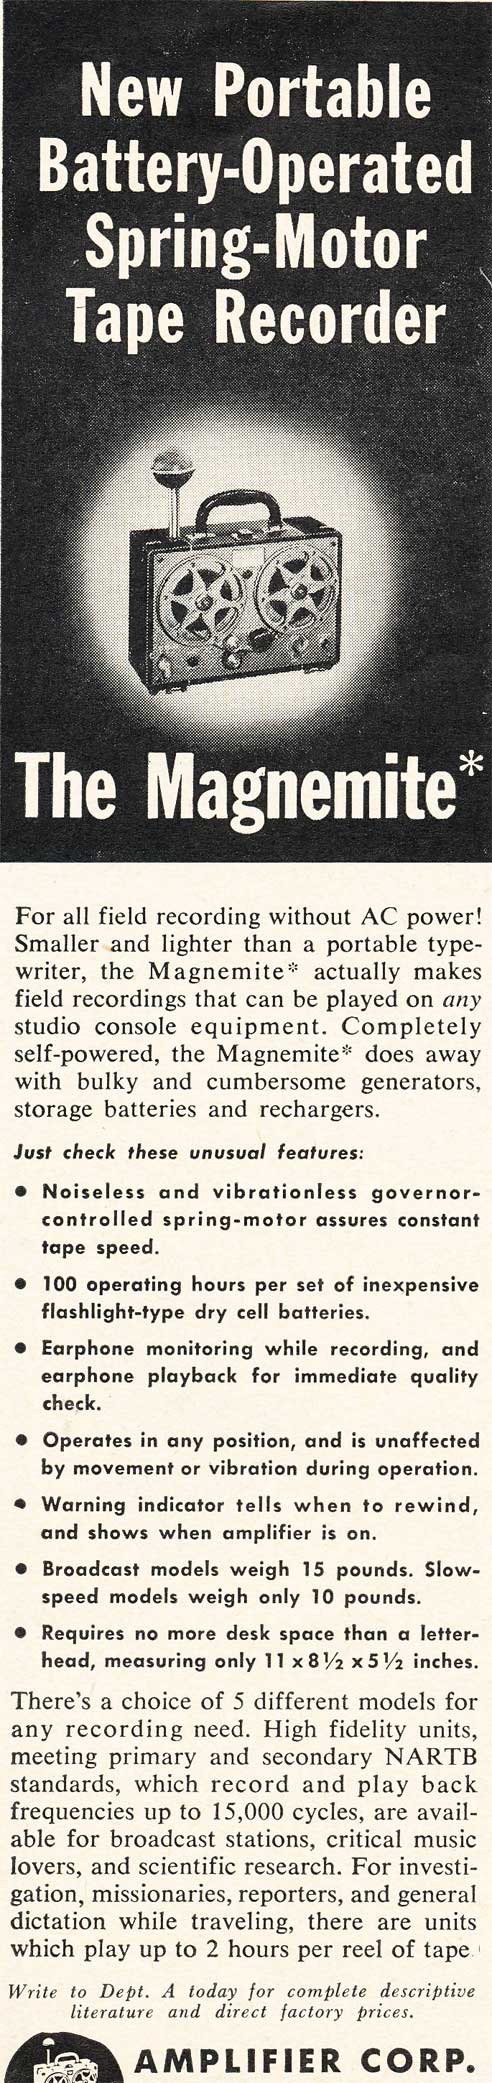 1953 Amplifier Corporation Magnemite reel tape recorder ad in Reel2ReelTexas.com's vintage recording collection